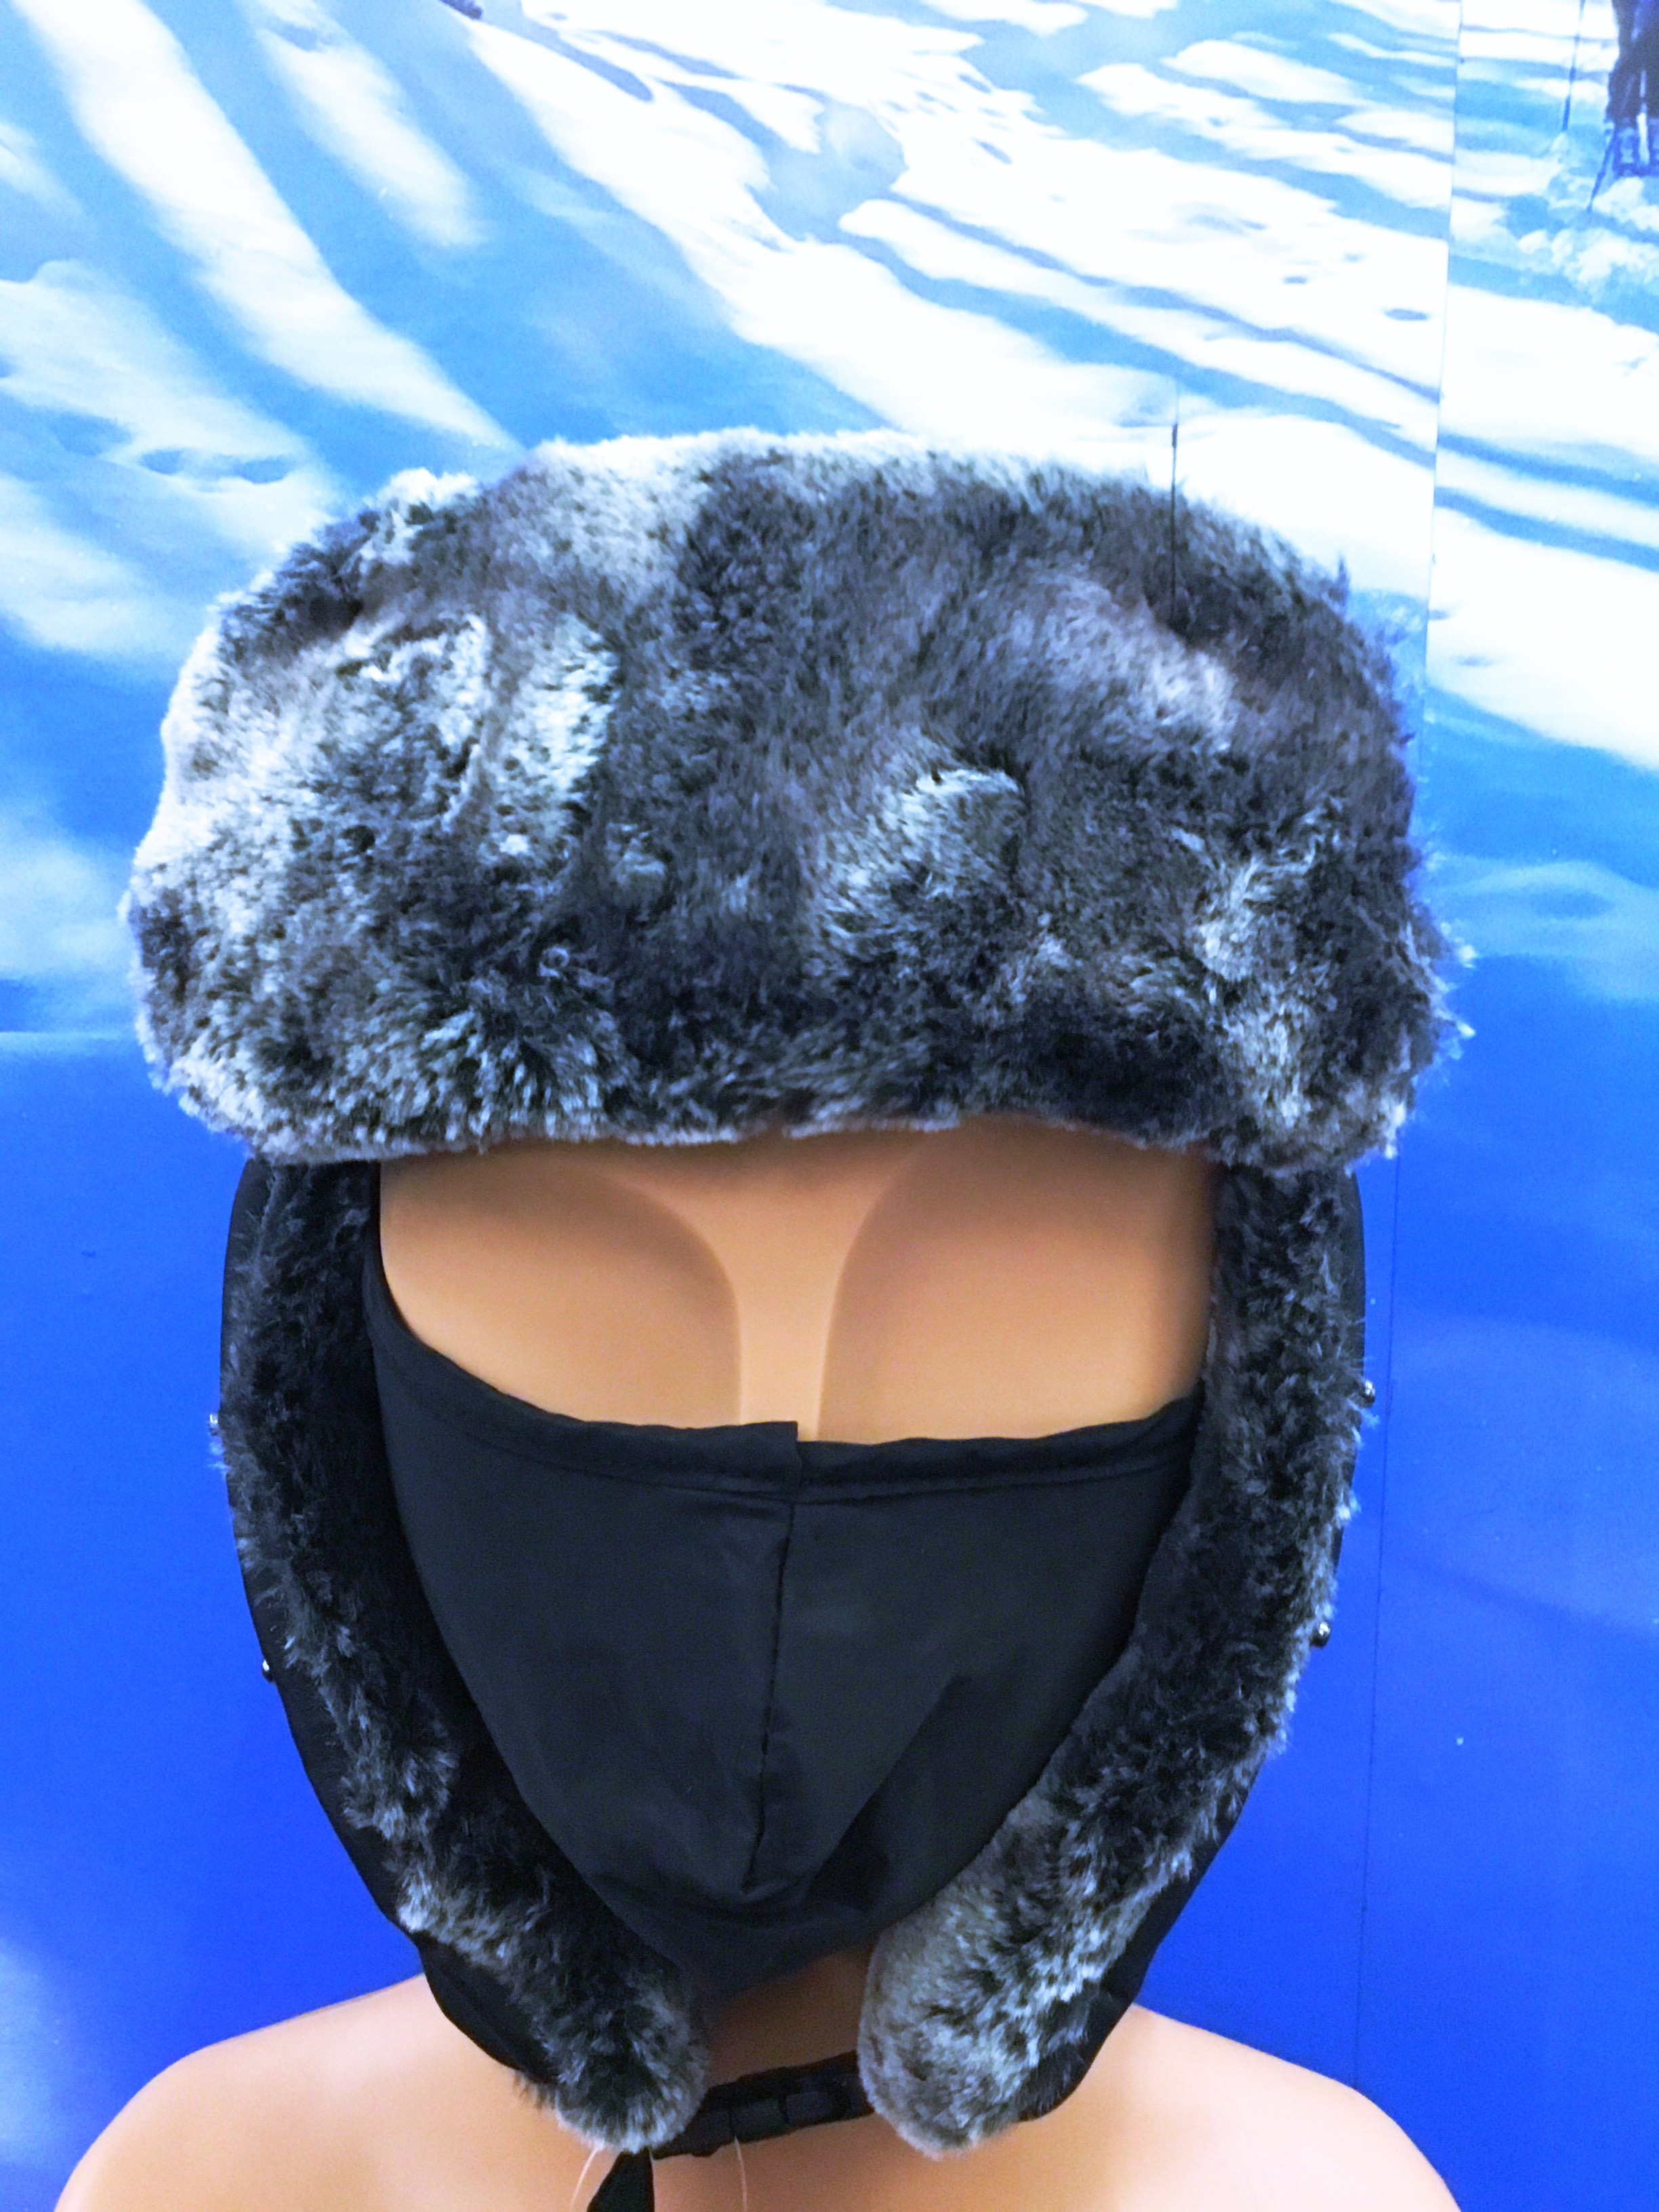 WATERPROOF SNOWCAP WITH MOUTH COVER